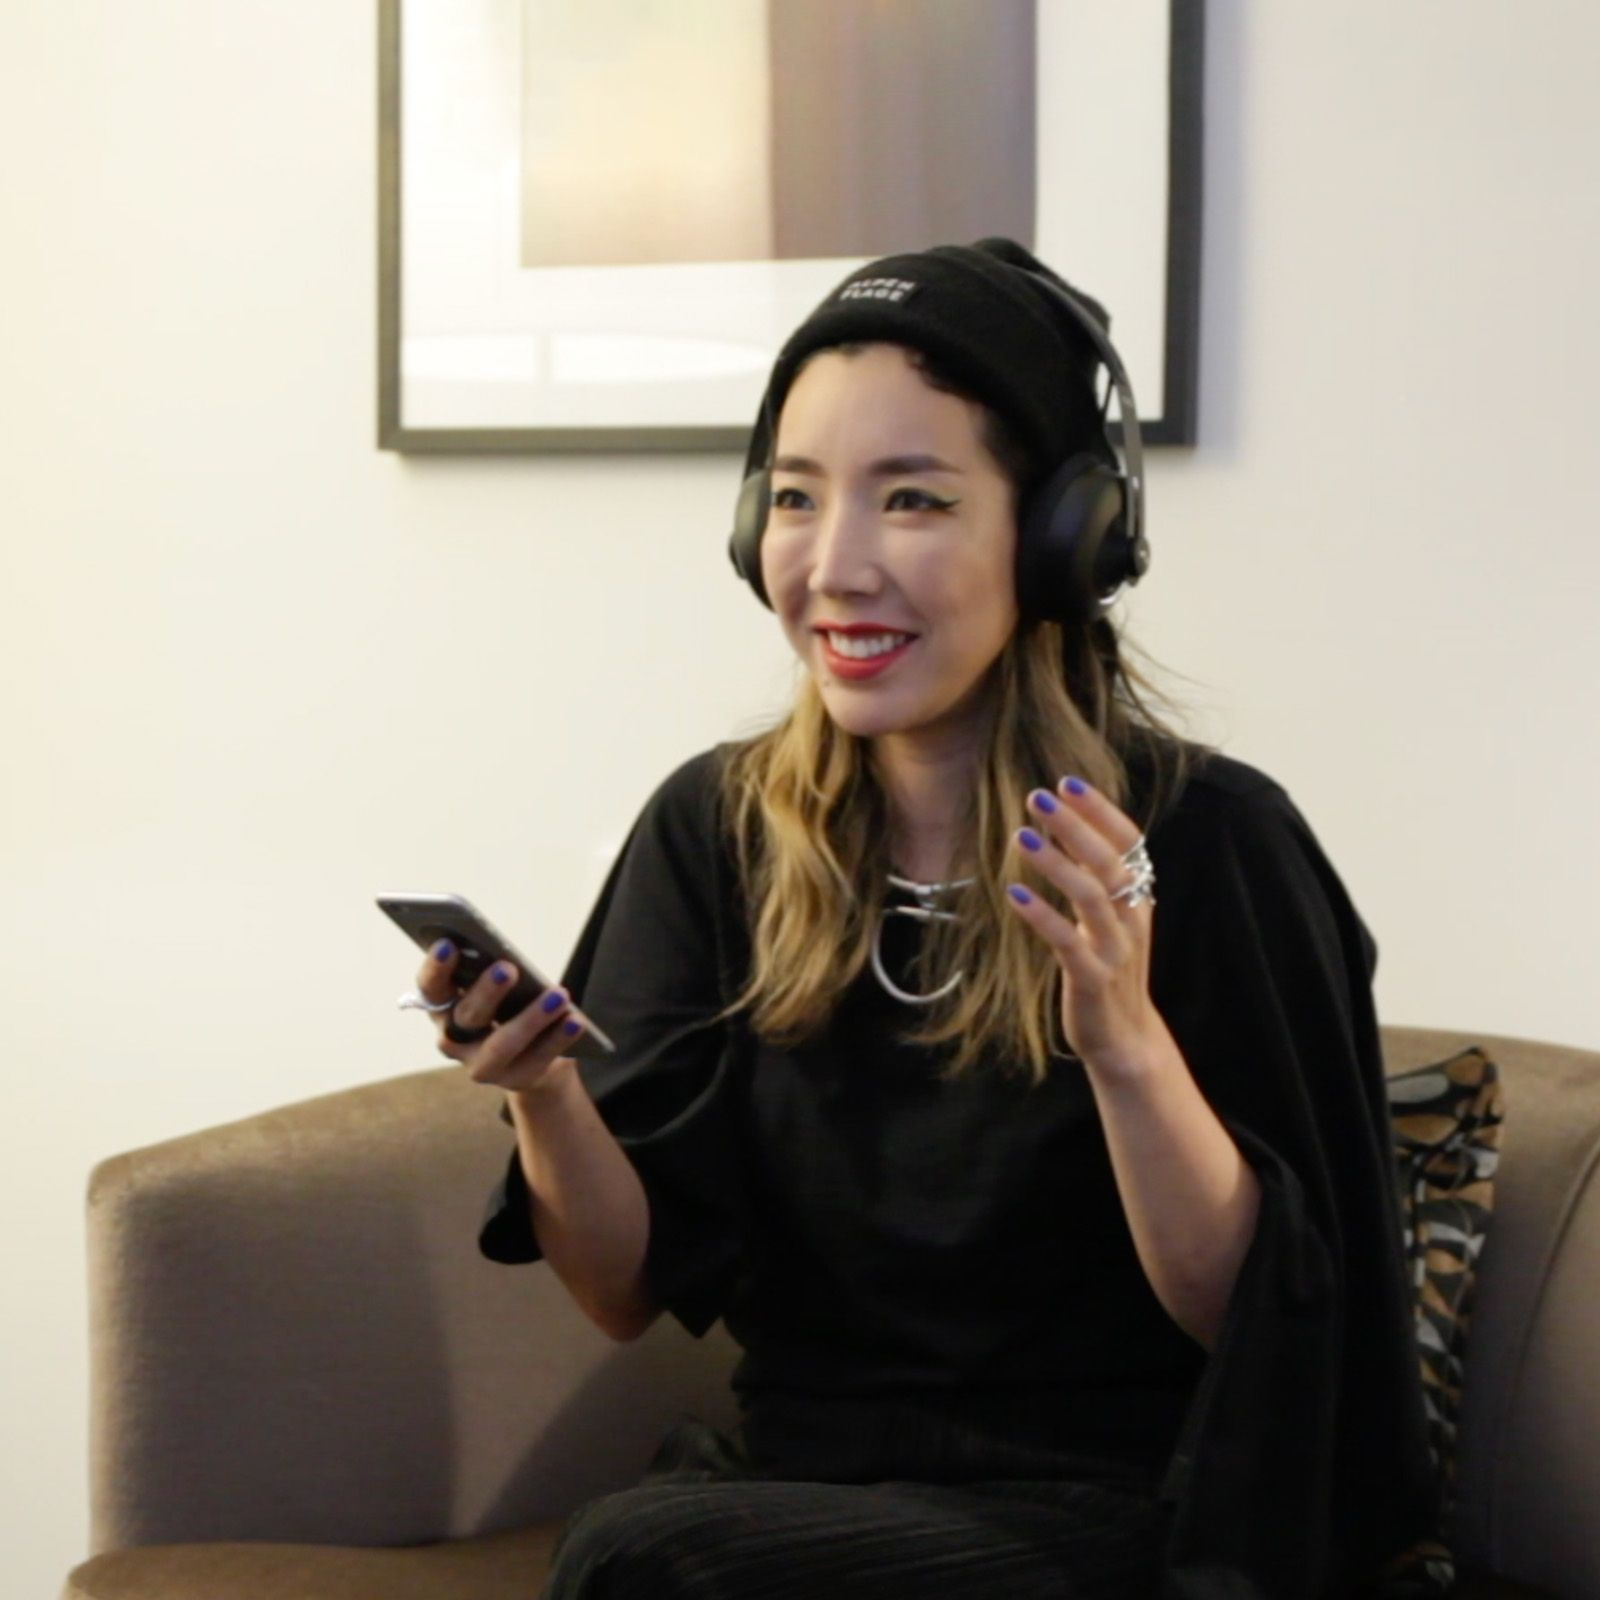 TOKiMONSTA, American record producer and DJ from Los Angeles, with NURAPHONE headphones on ears